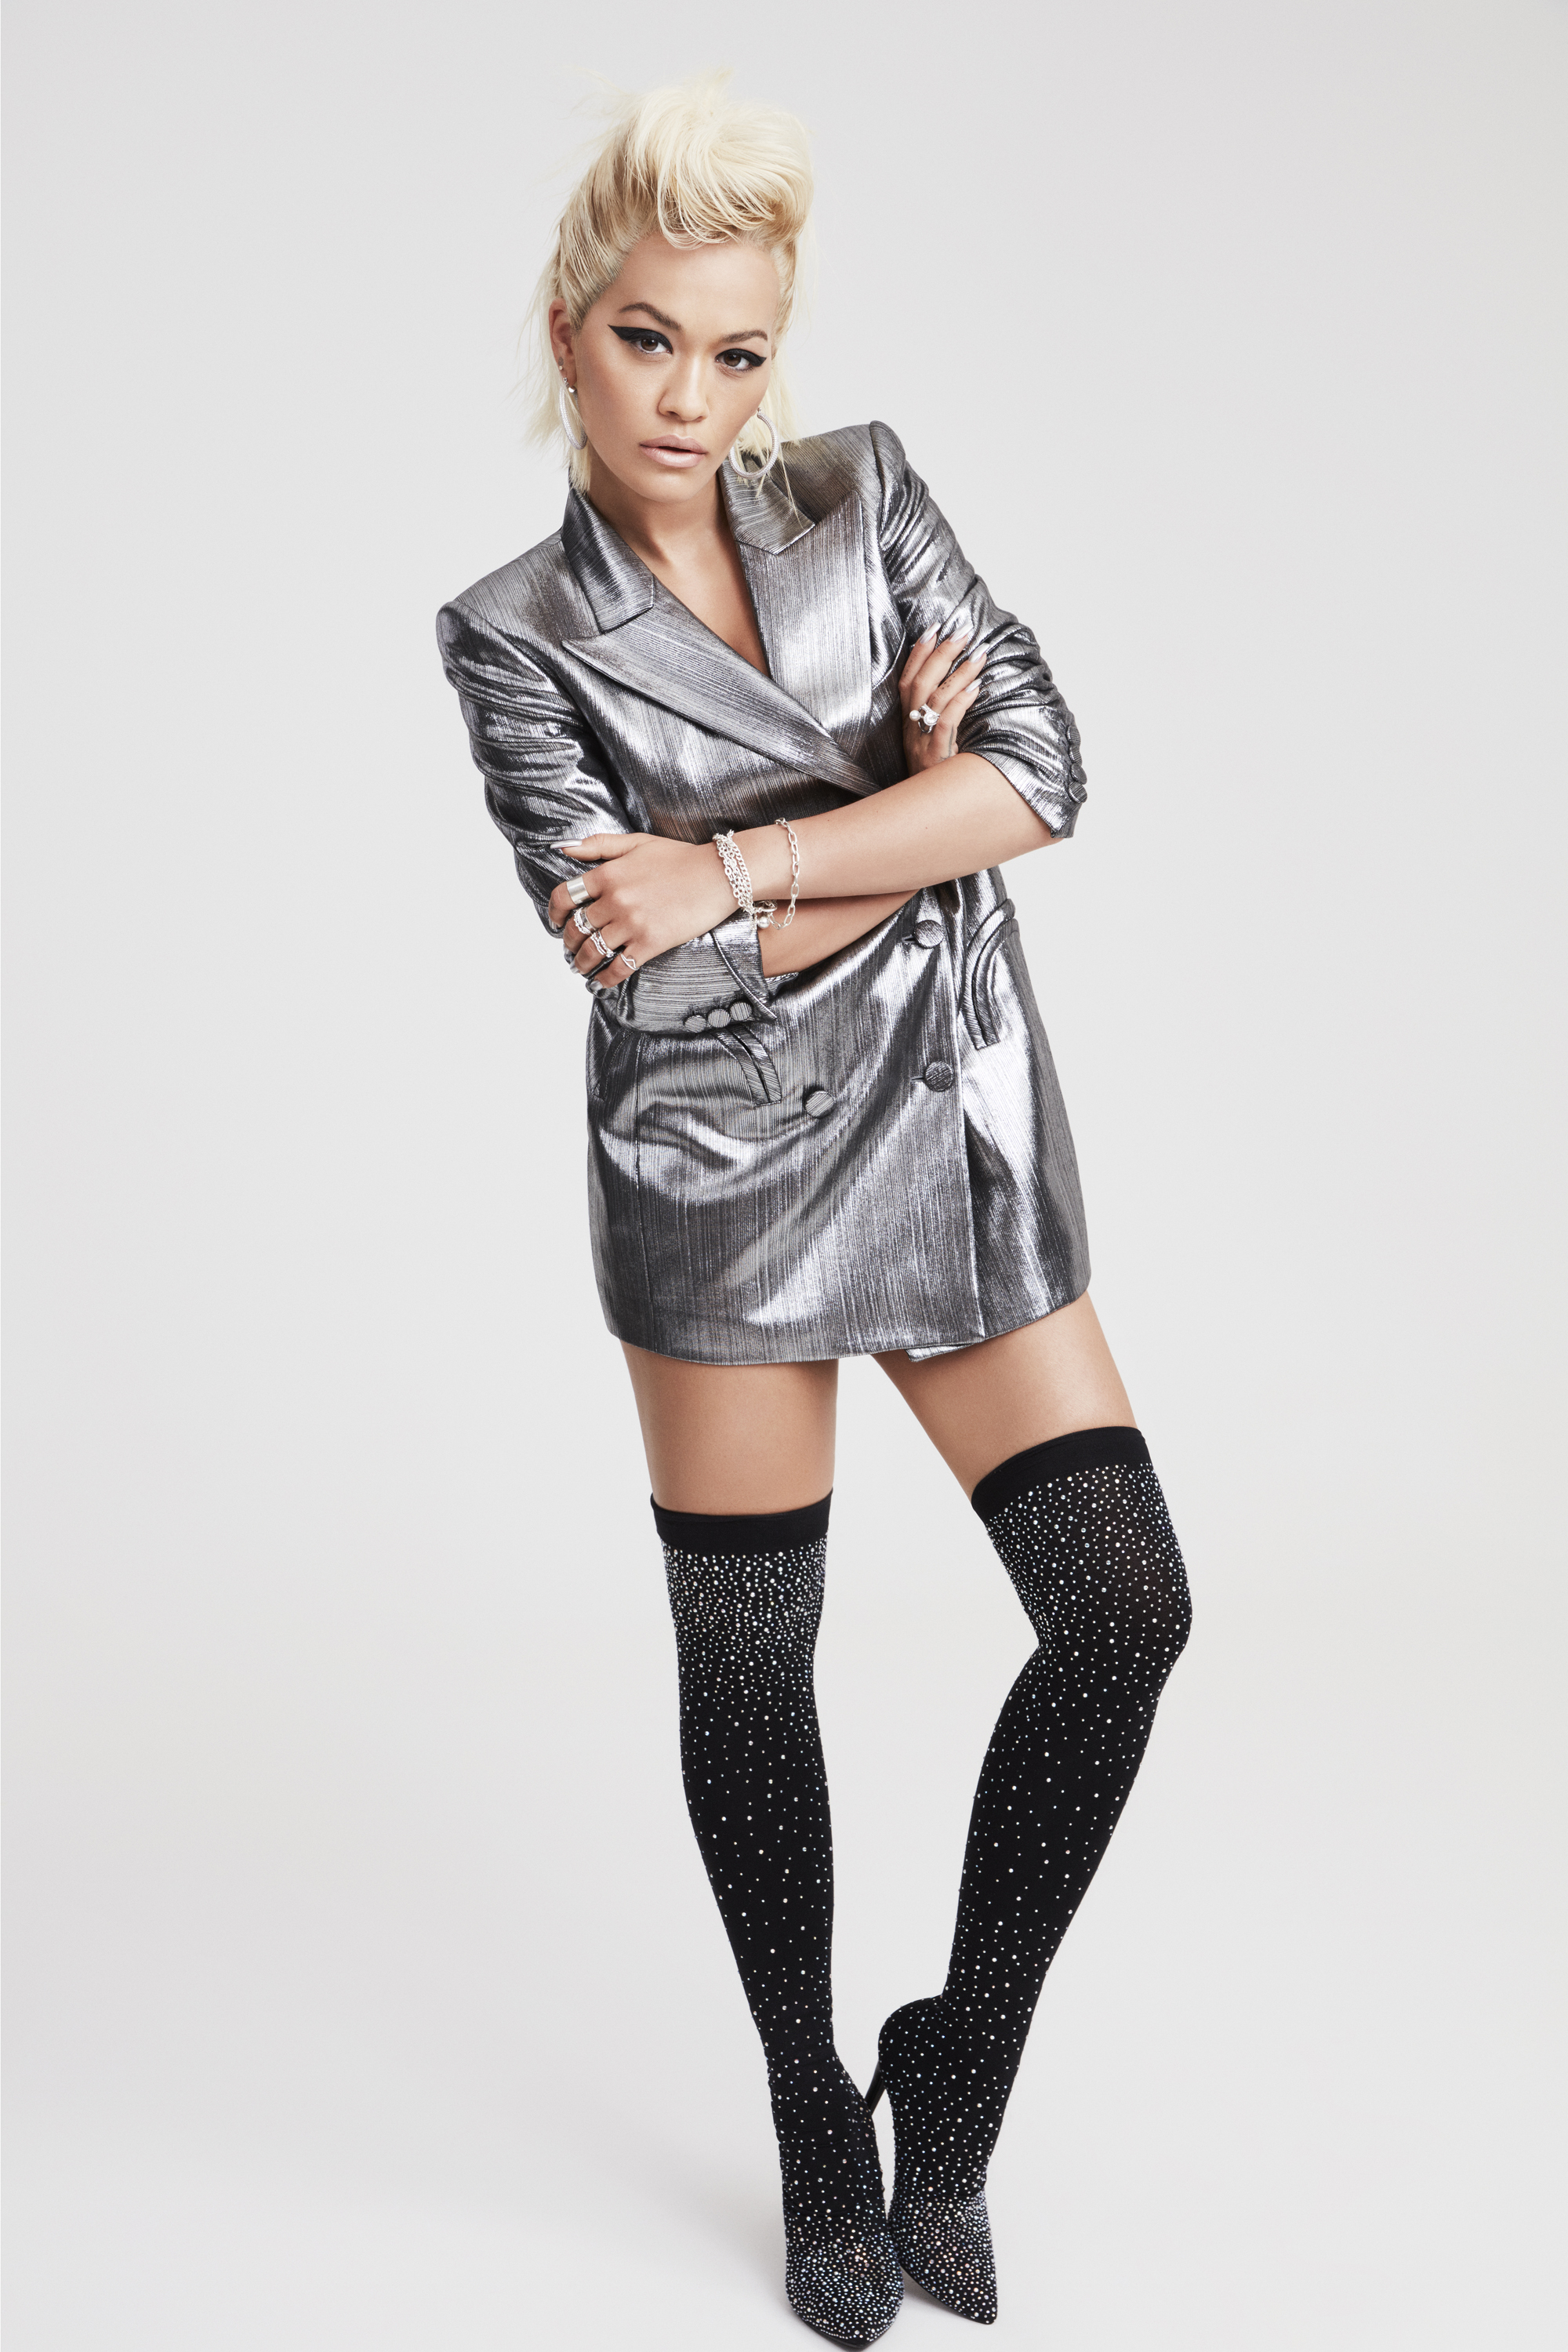 Rita Ora wearing shoes from her collection with Deichmann